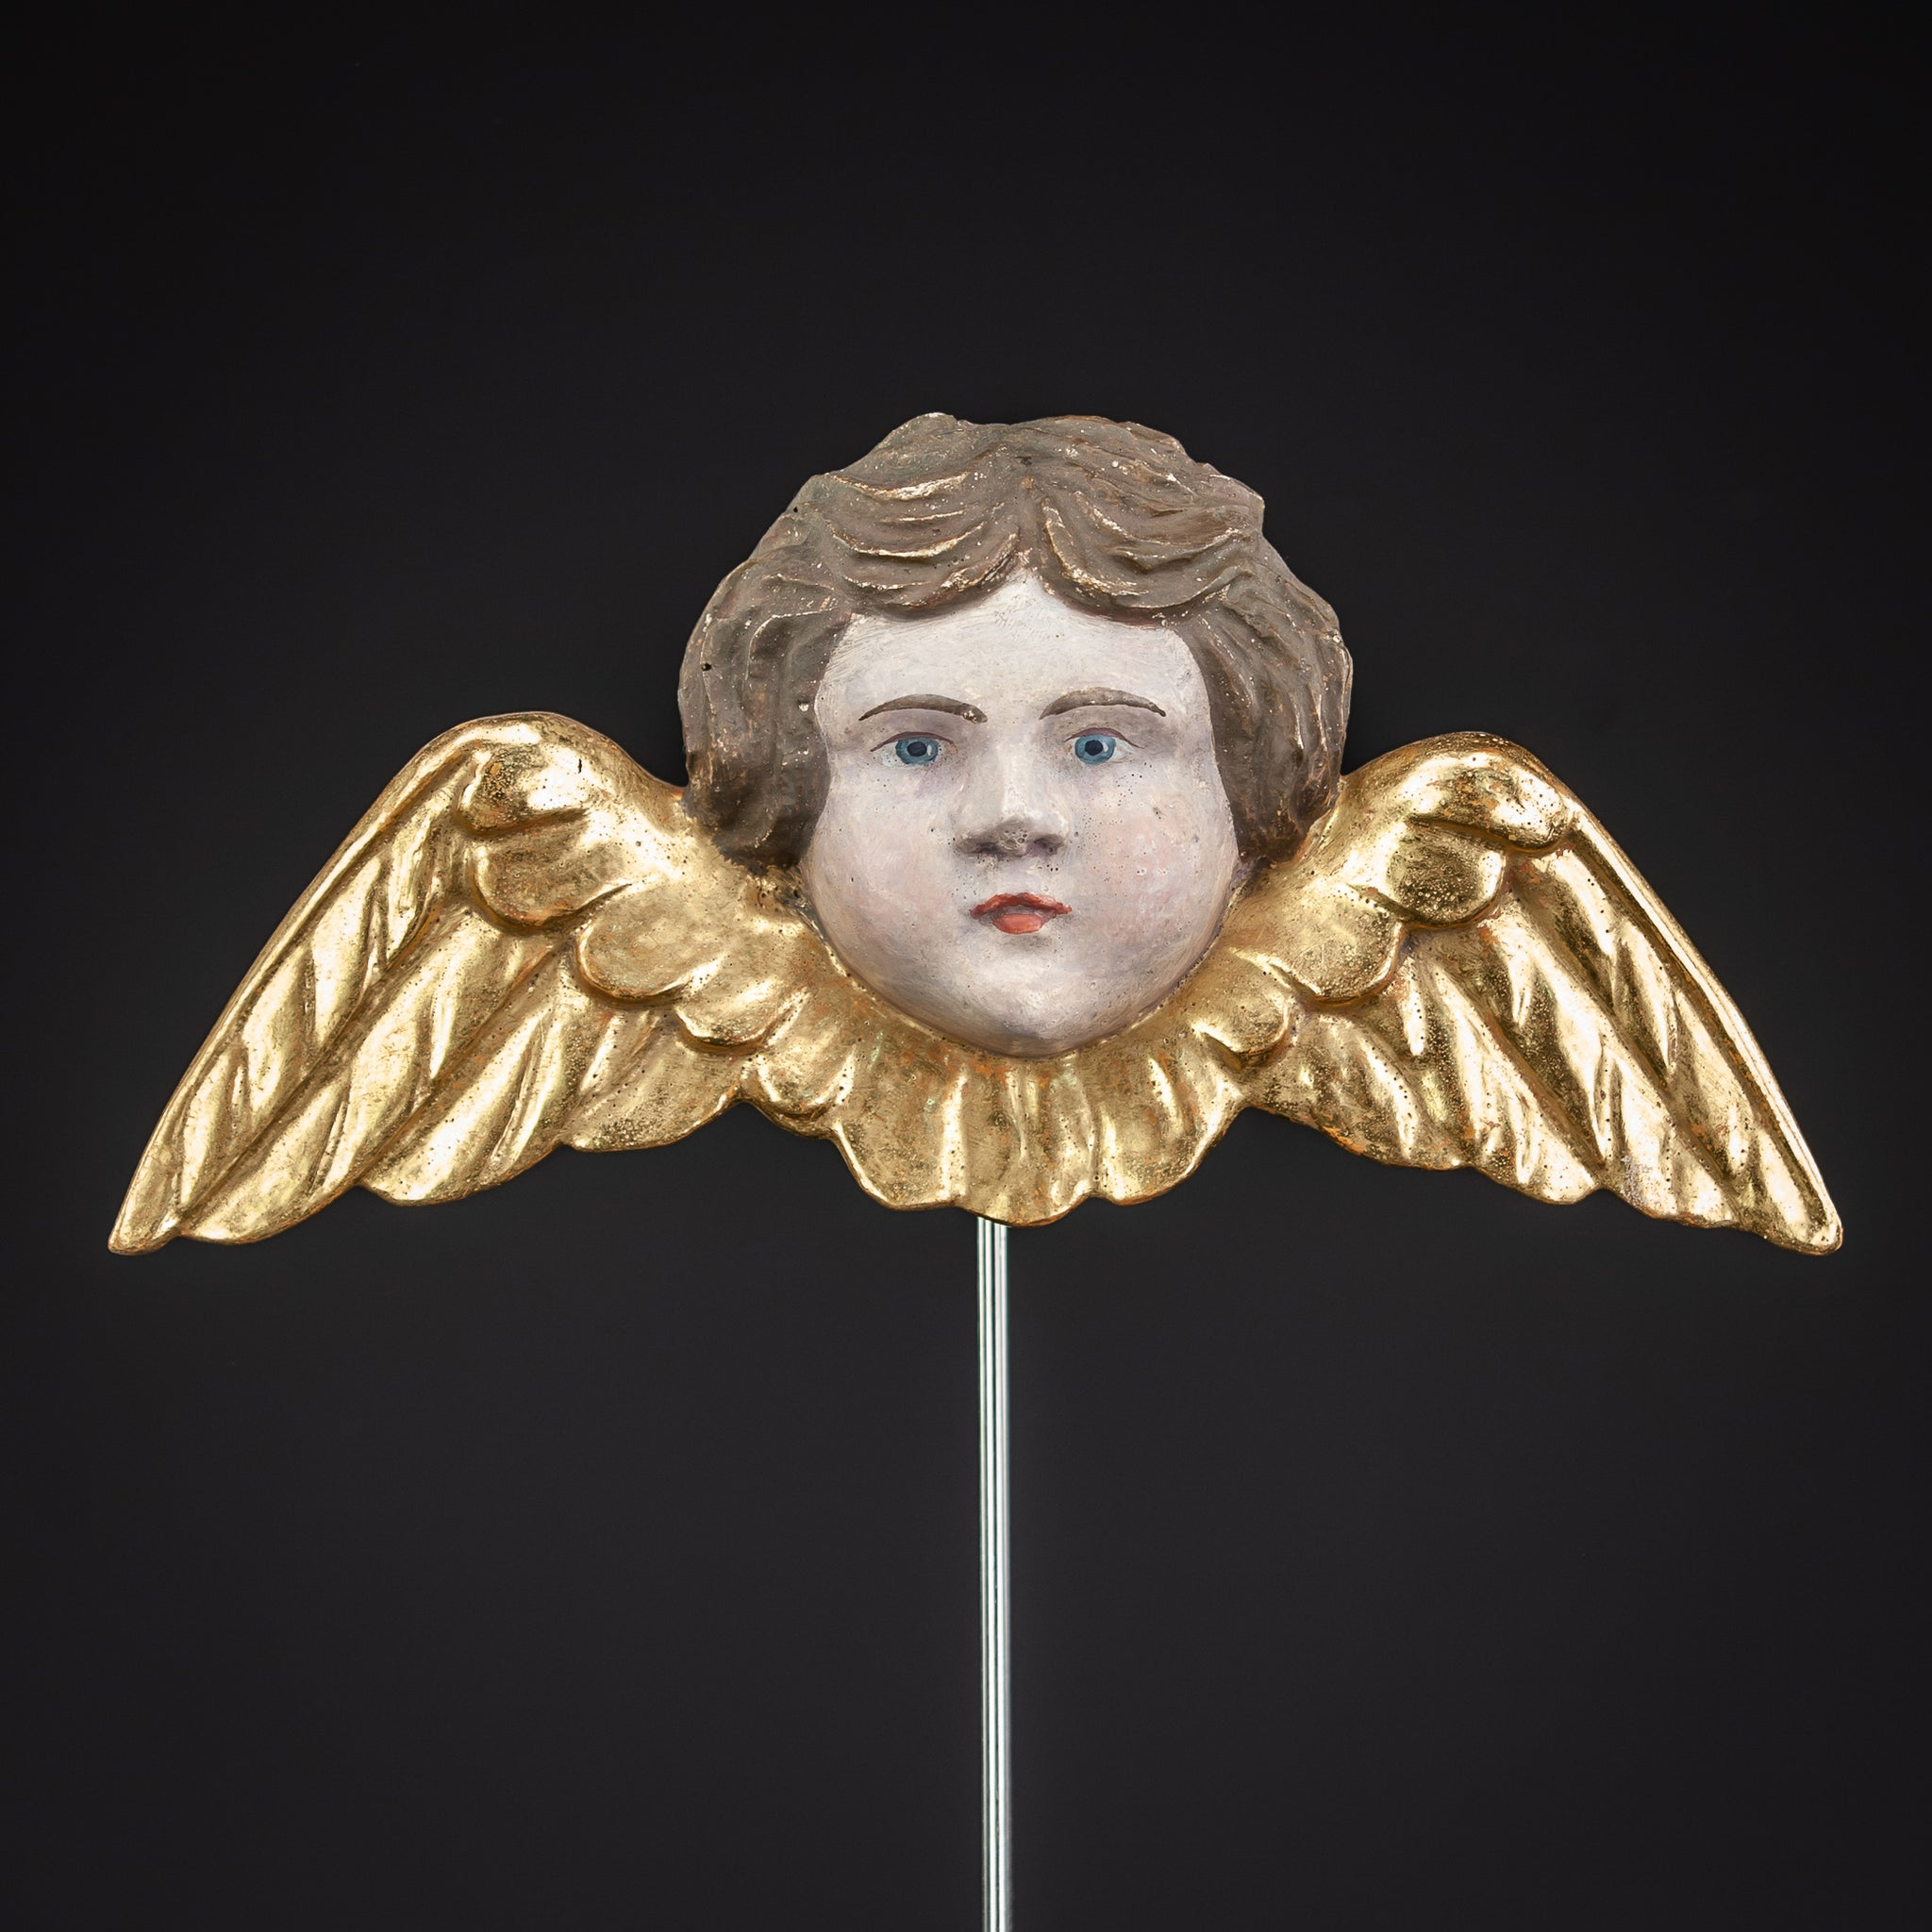 Angel Wood Carving Statue 9.3""